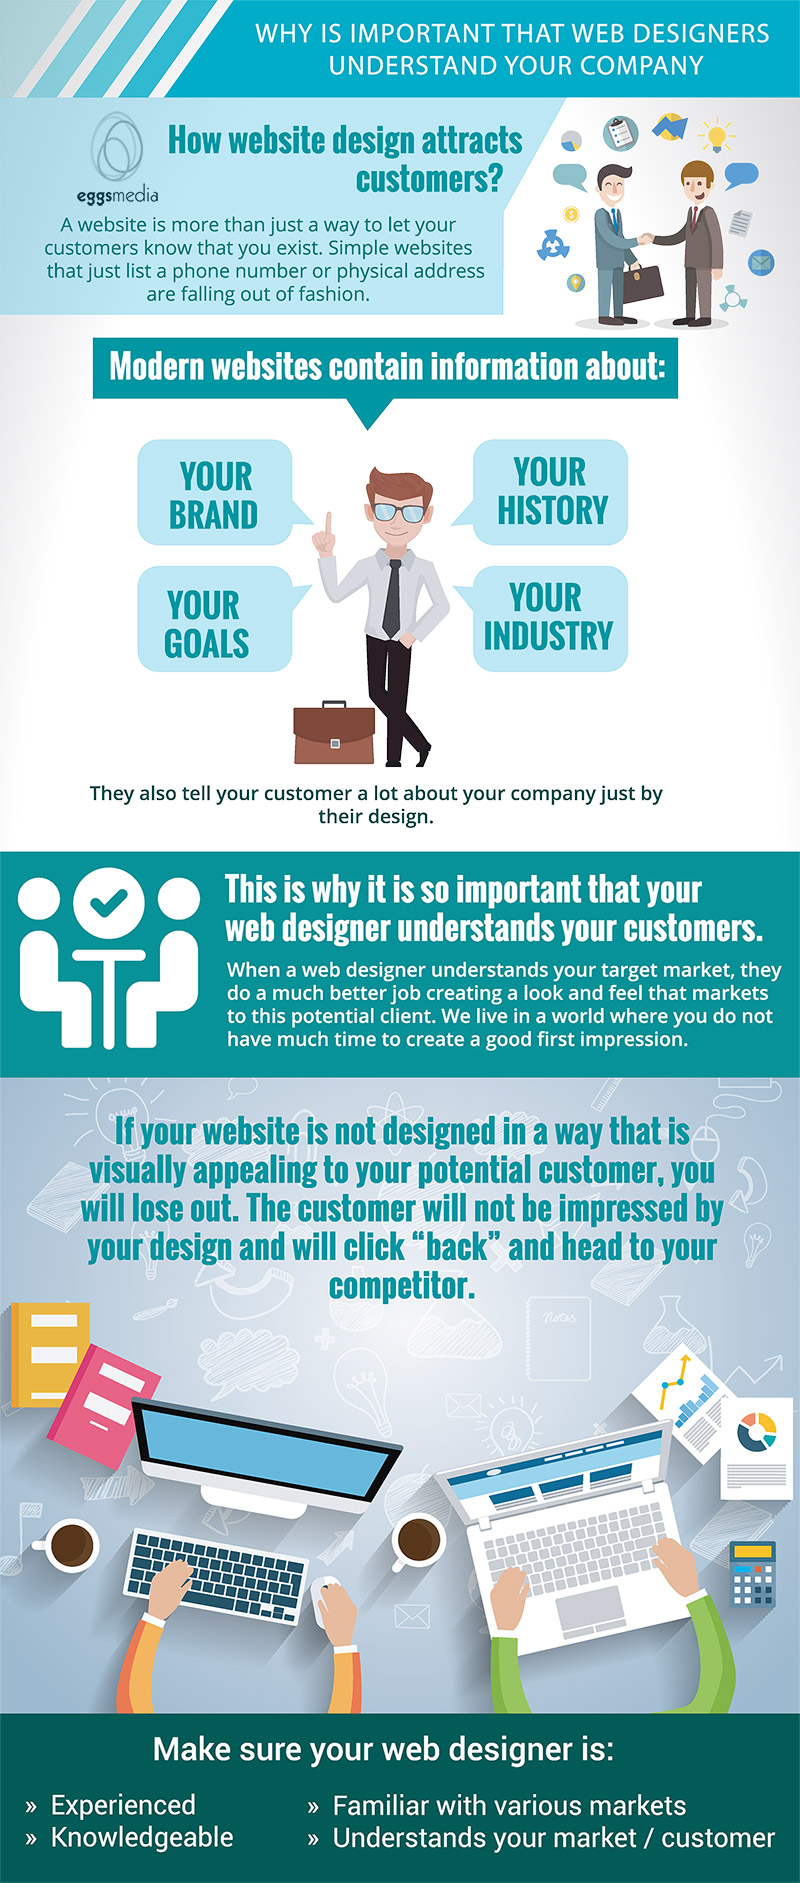 Why it's Important that Web Designers Understand your Customers - eggsmedia infographic